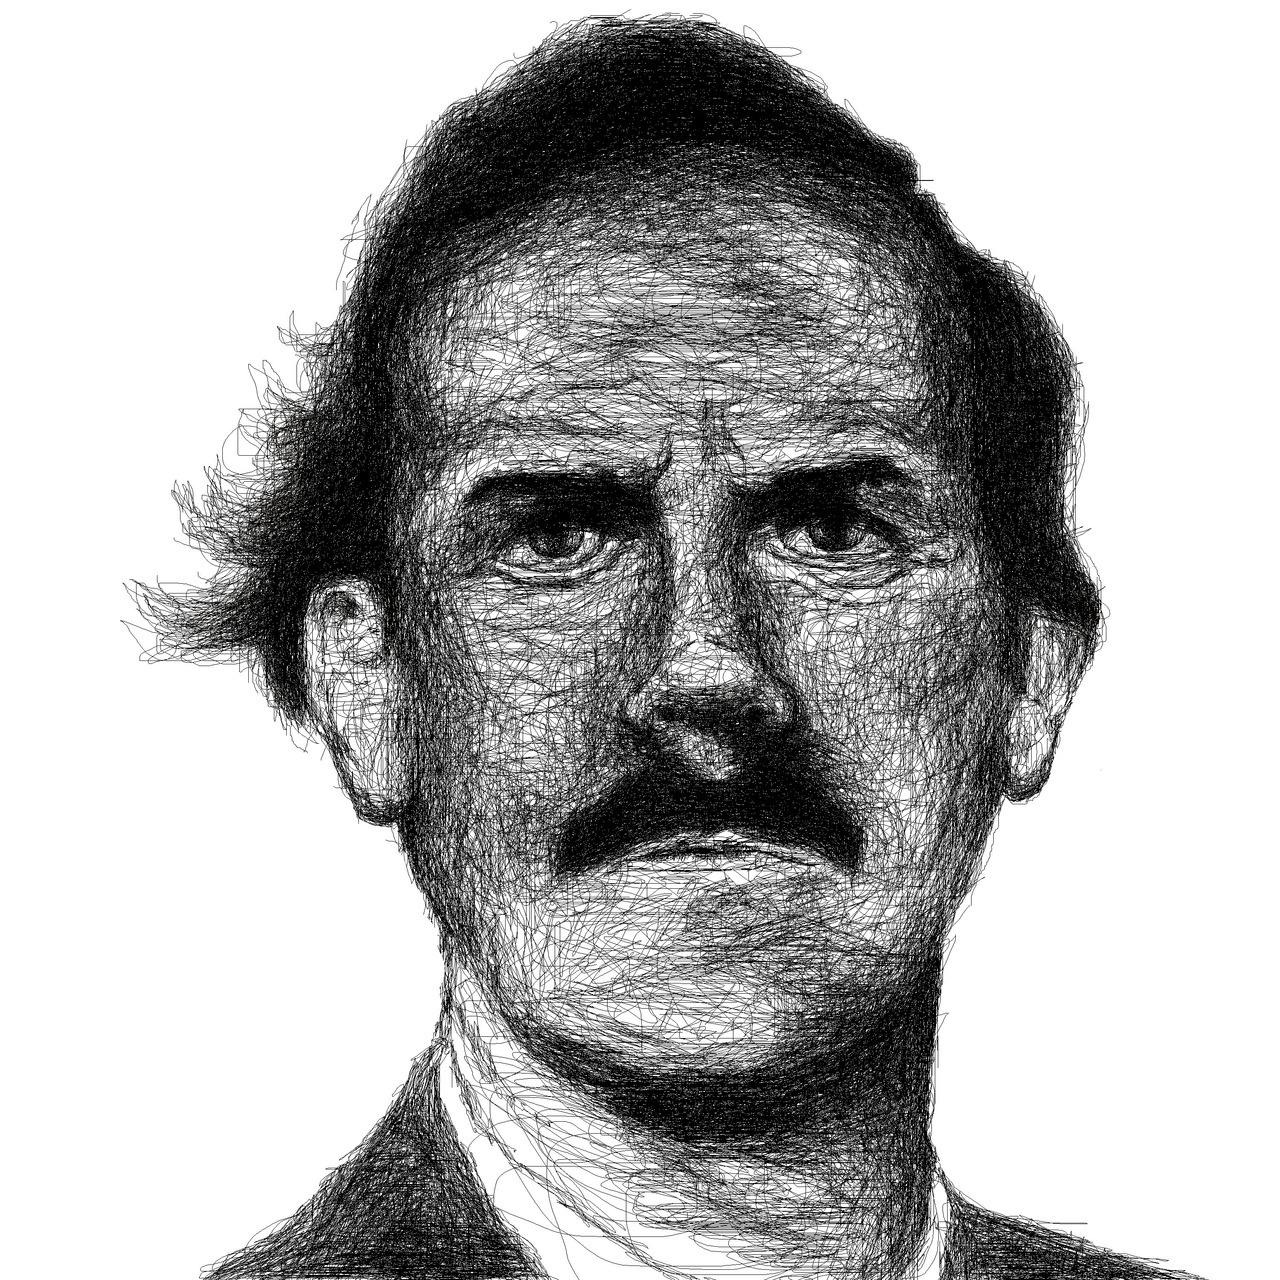 John Cleese fun. Basil Fawlty drawn on photoshop.